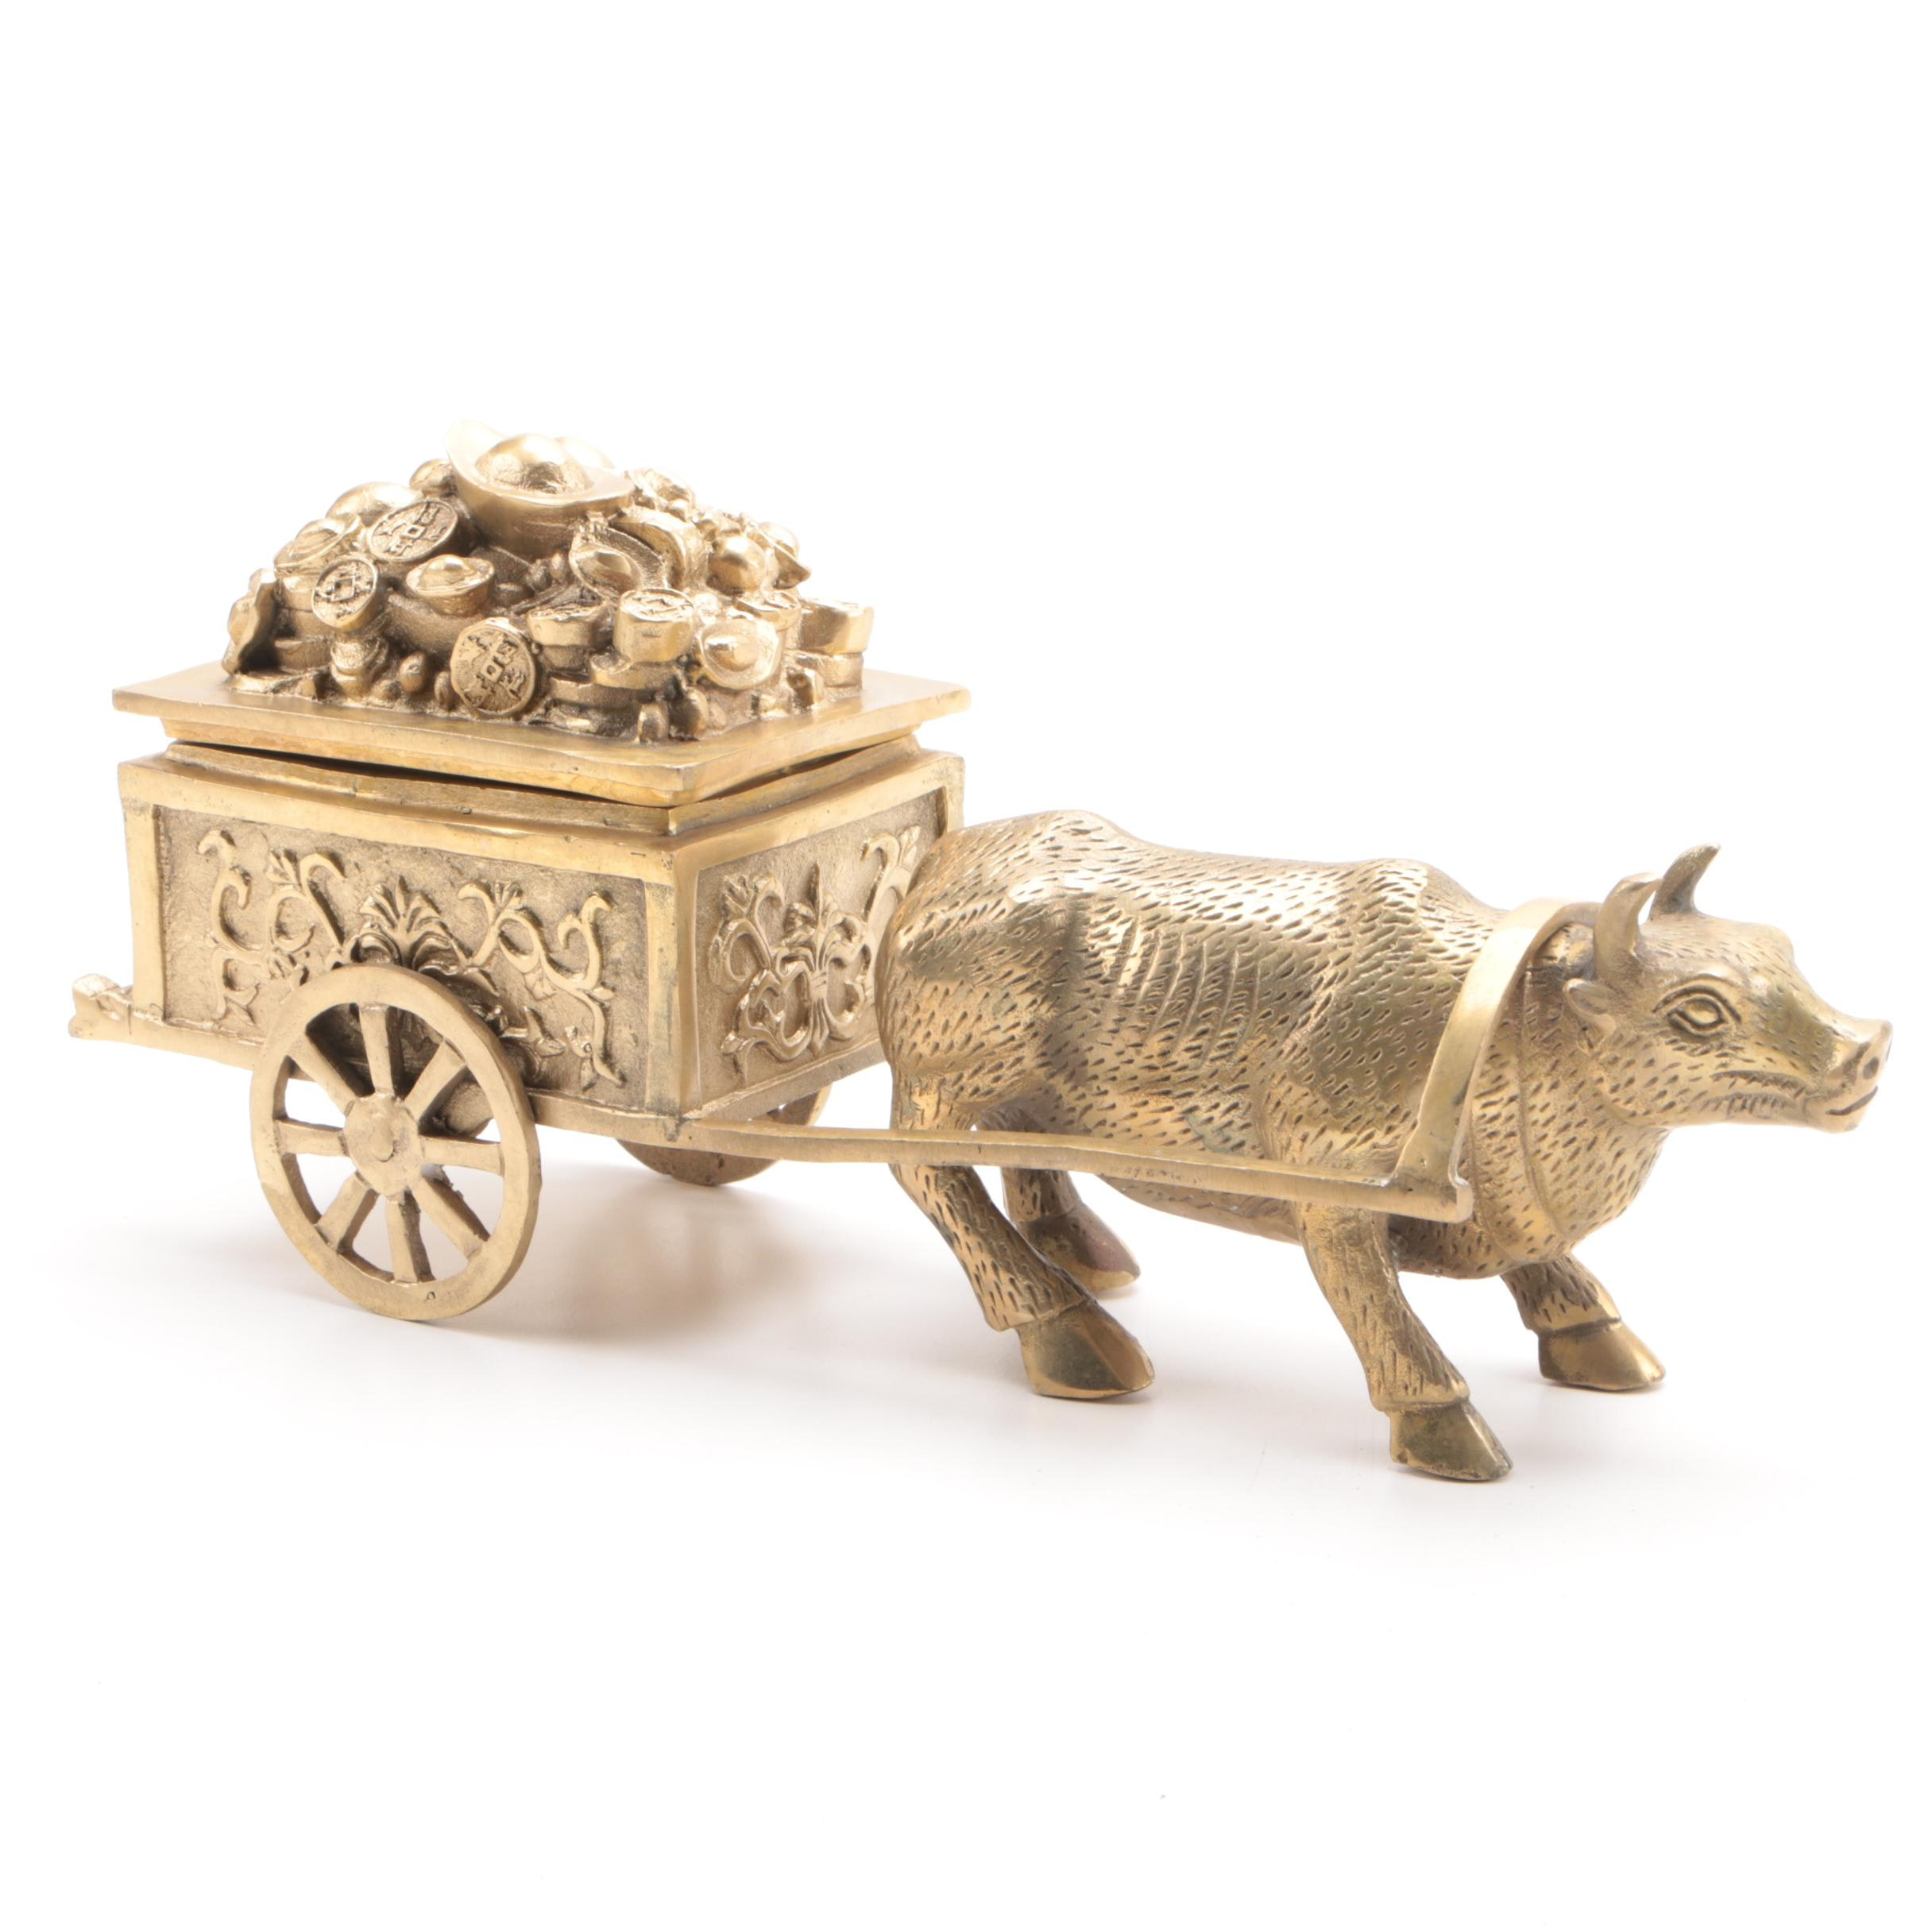 Chinese Brass Ox Figurine and Oxcart Trinket Box